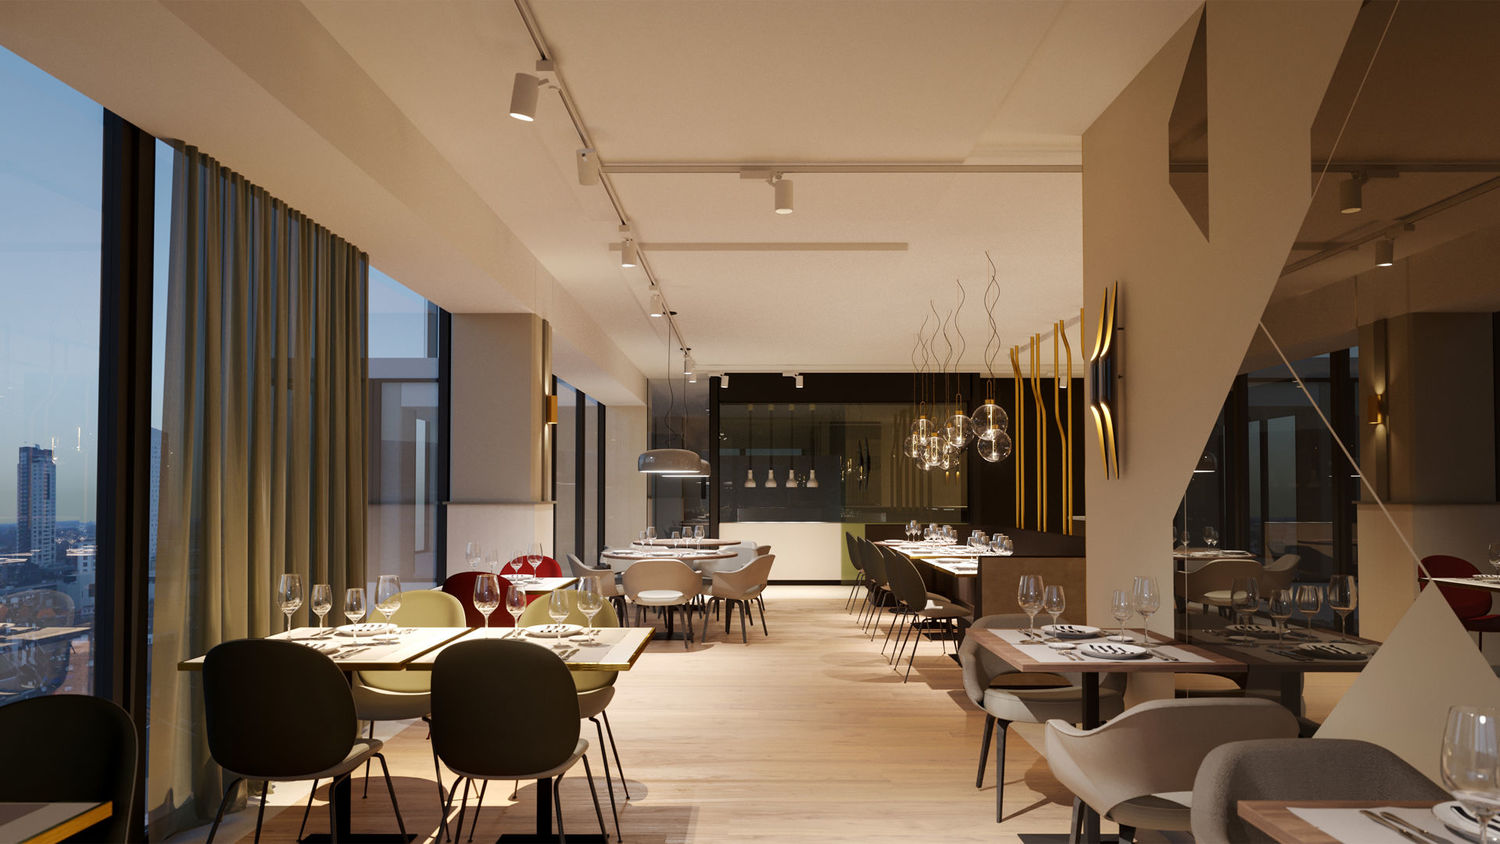 Nh collection hotel eindhoven holland